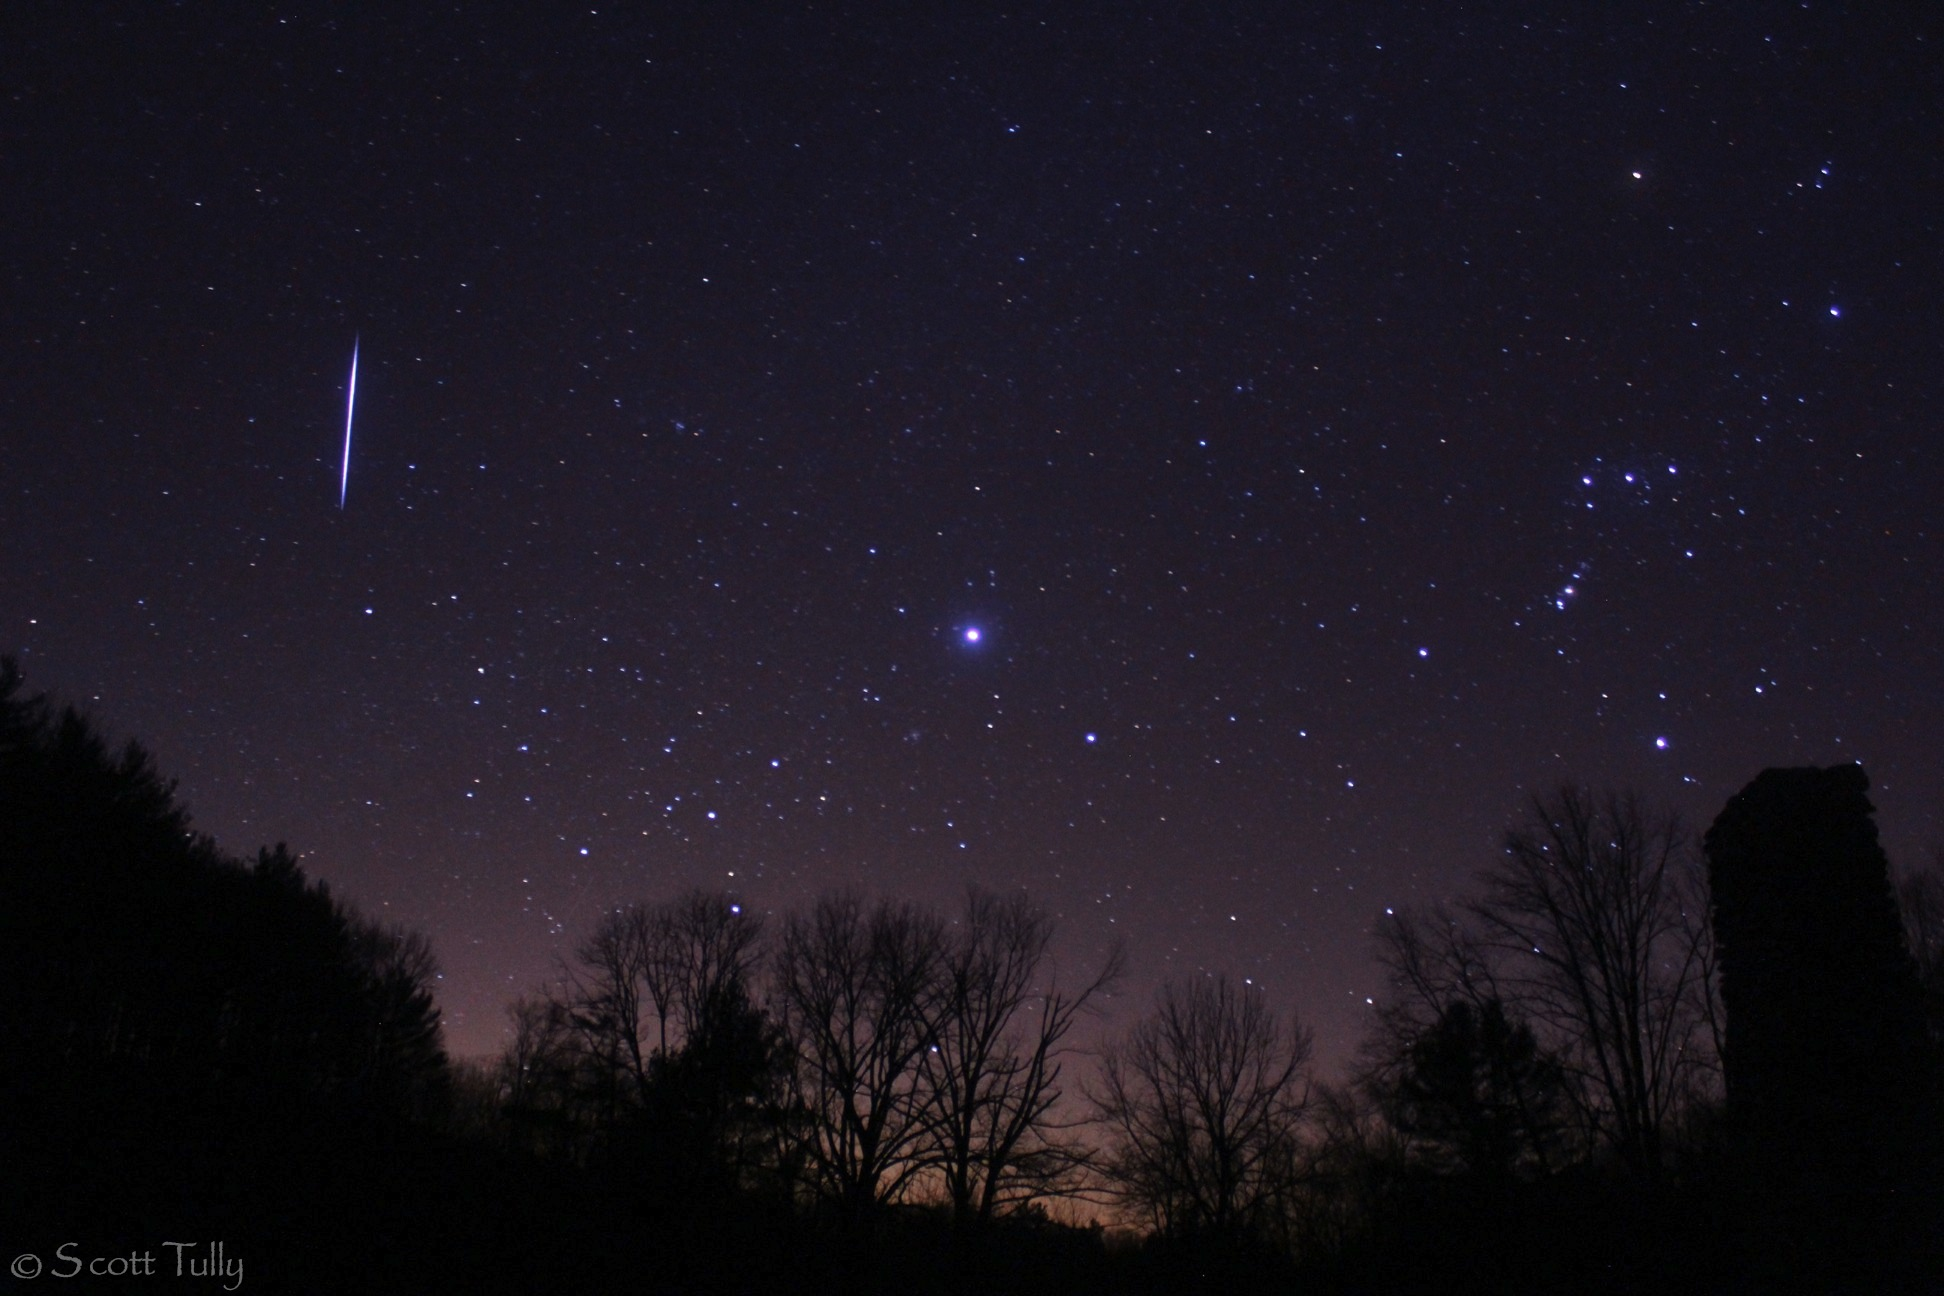 Leonid Meteor Shower Peaks This Weekend: How to See It